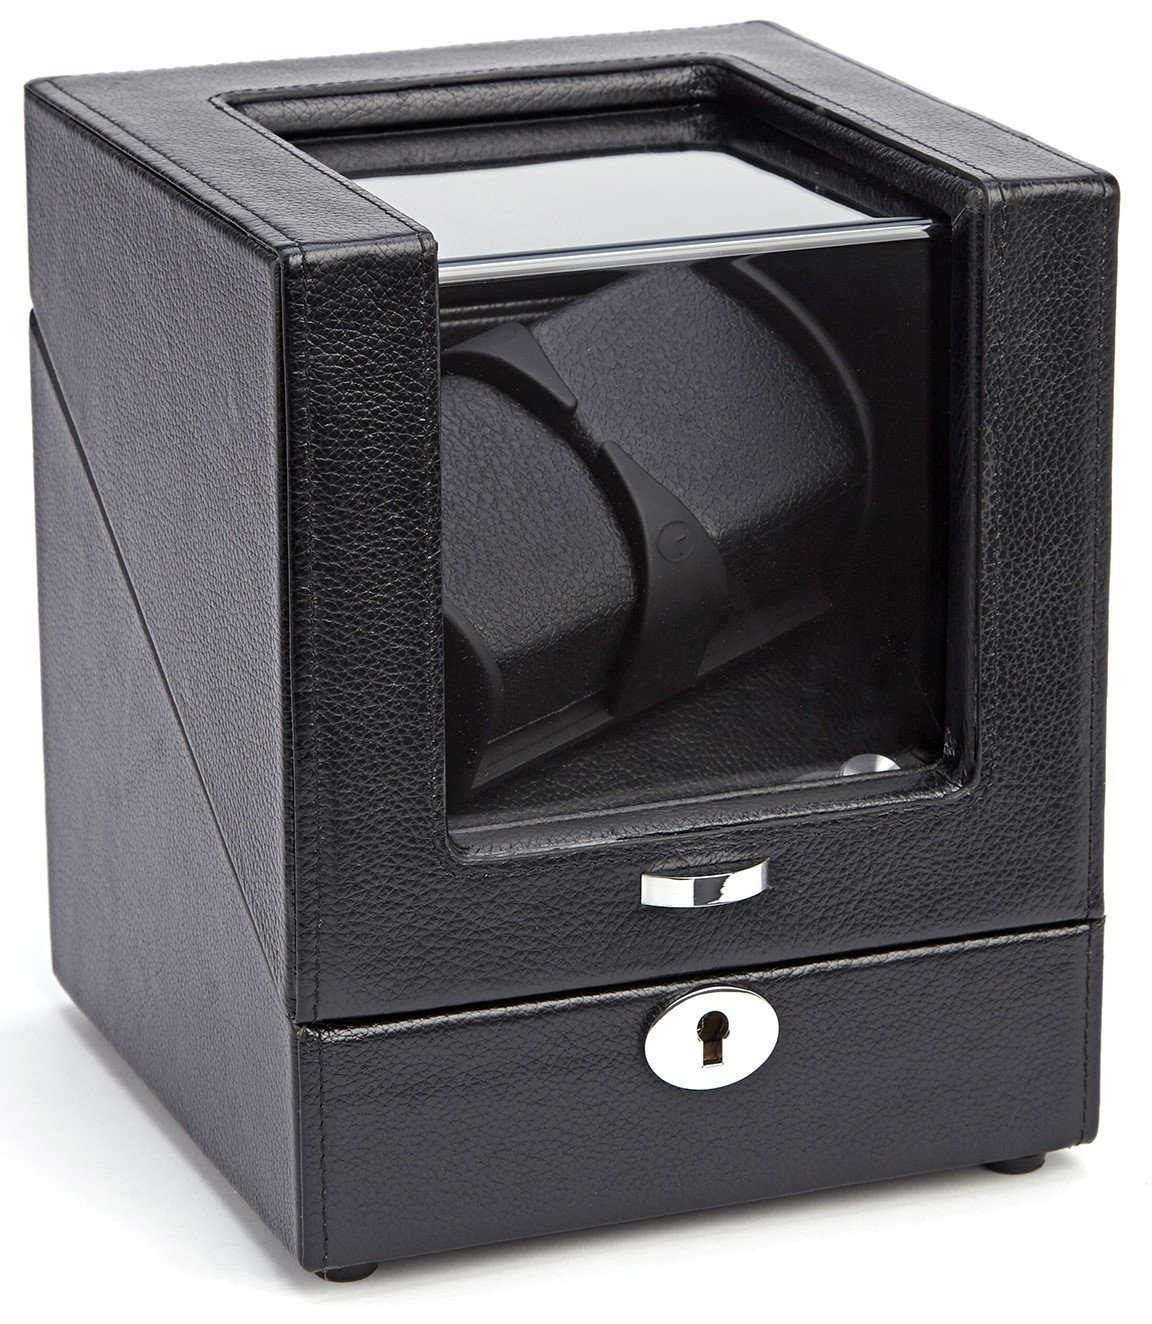 ROYCE Luxury Battery Powered Double Watch Winder Handemade in Genuine Pebbled Leather - Black